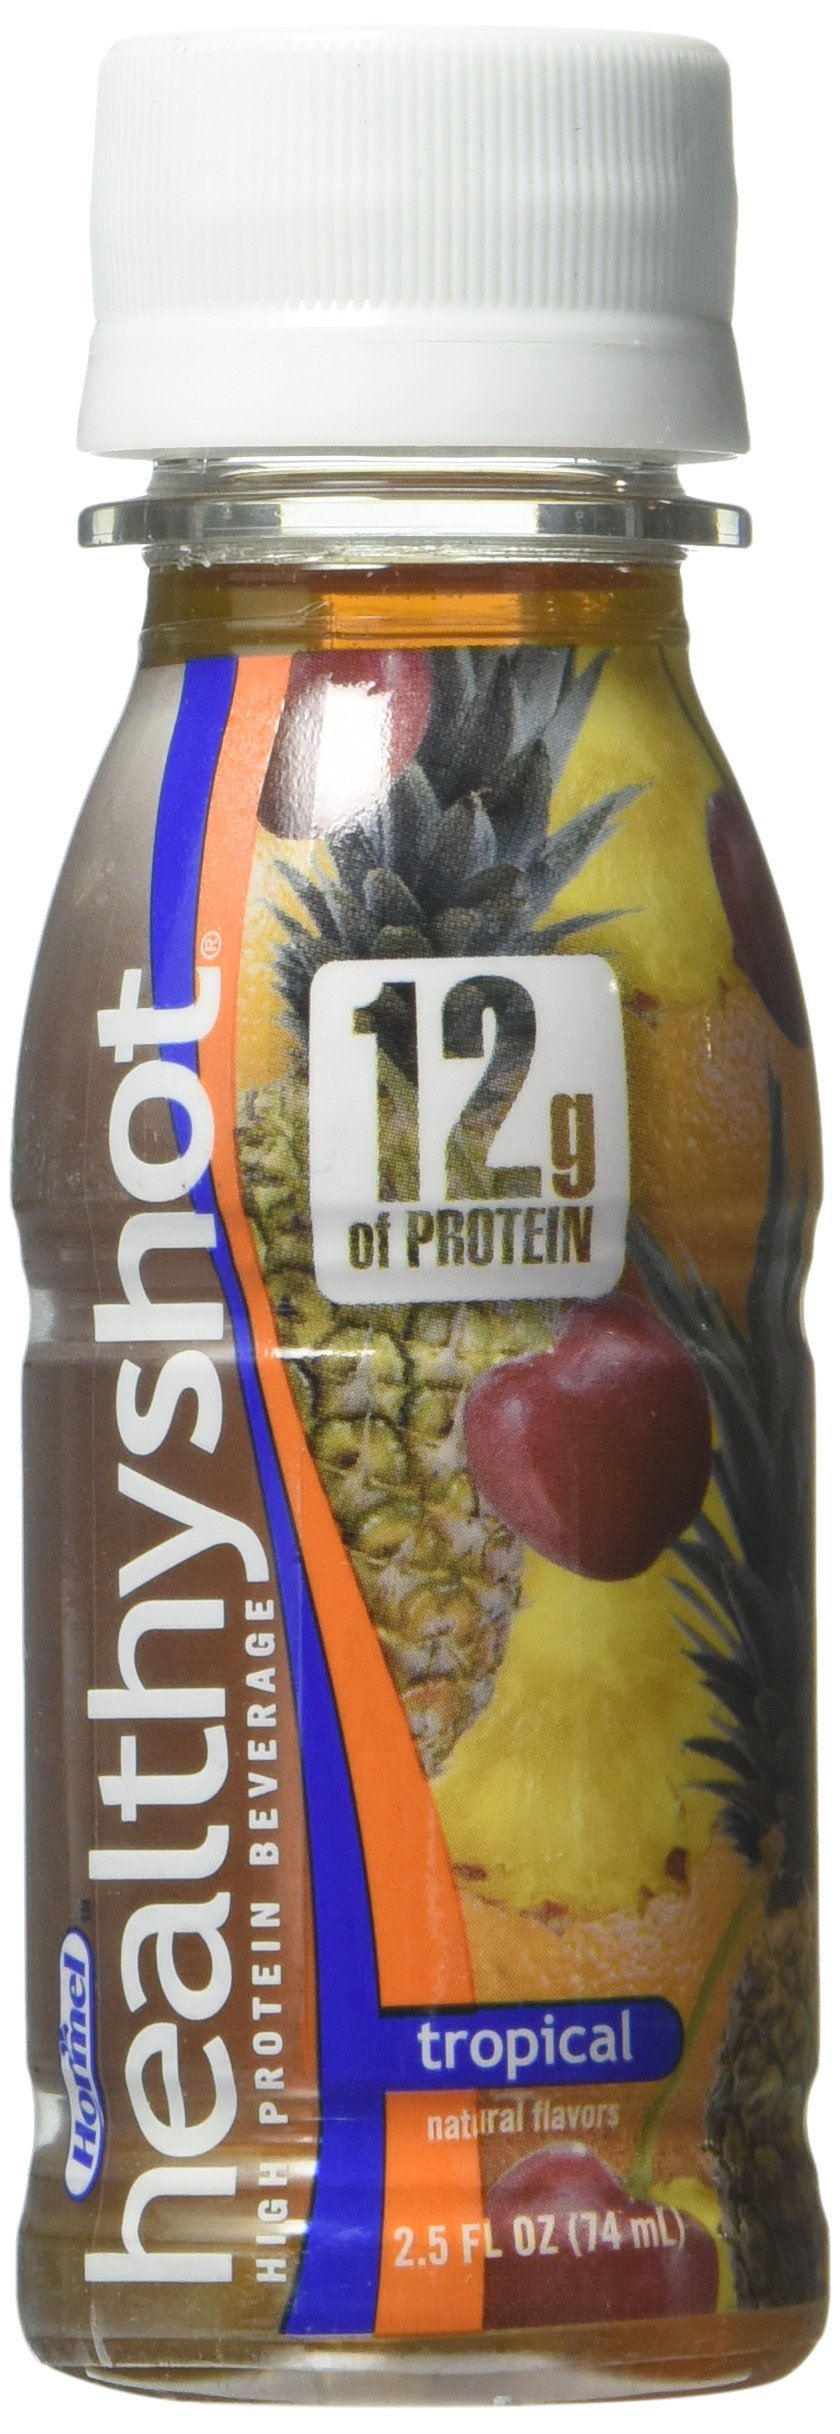 Healthy Shot High Protein Supplement Tropical Beverage, 2.5 Ounce -- 24 per case. by Hormel Healthlabs